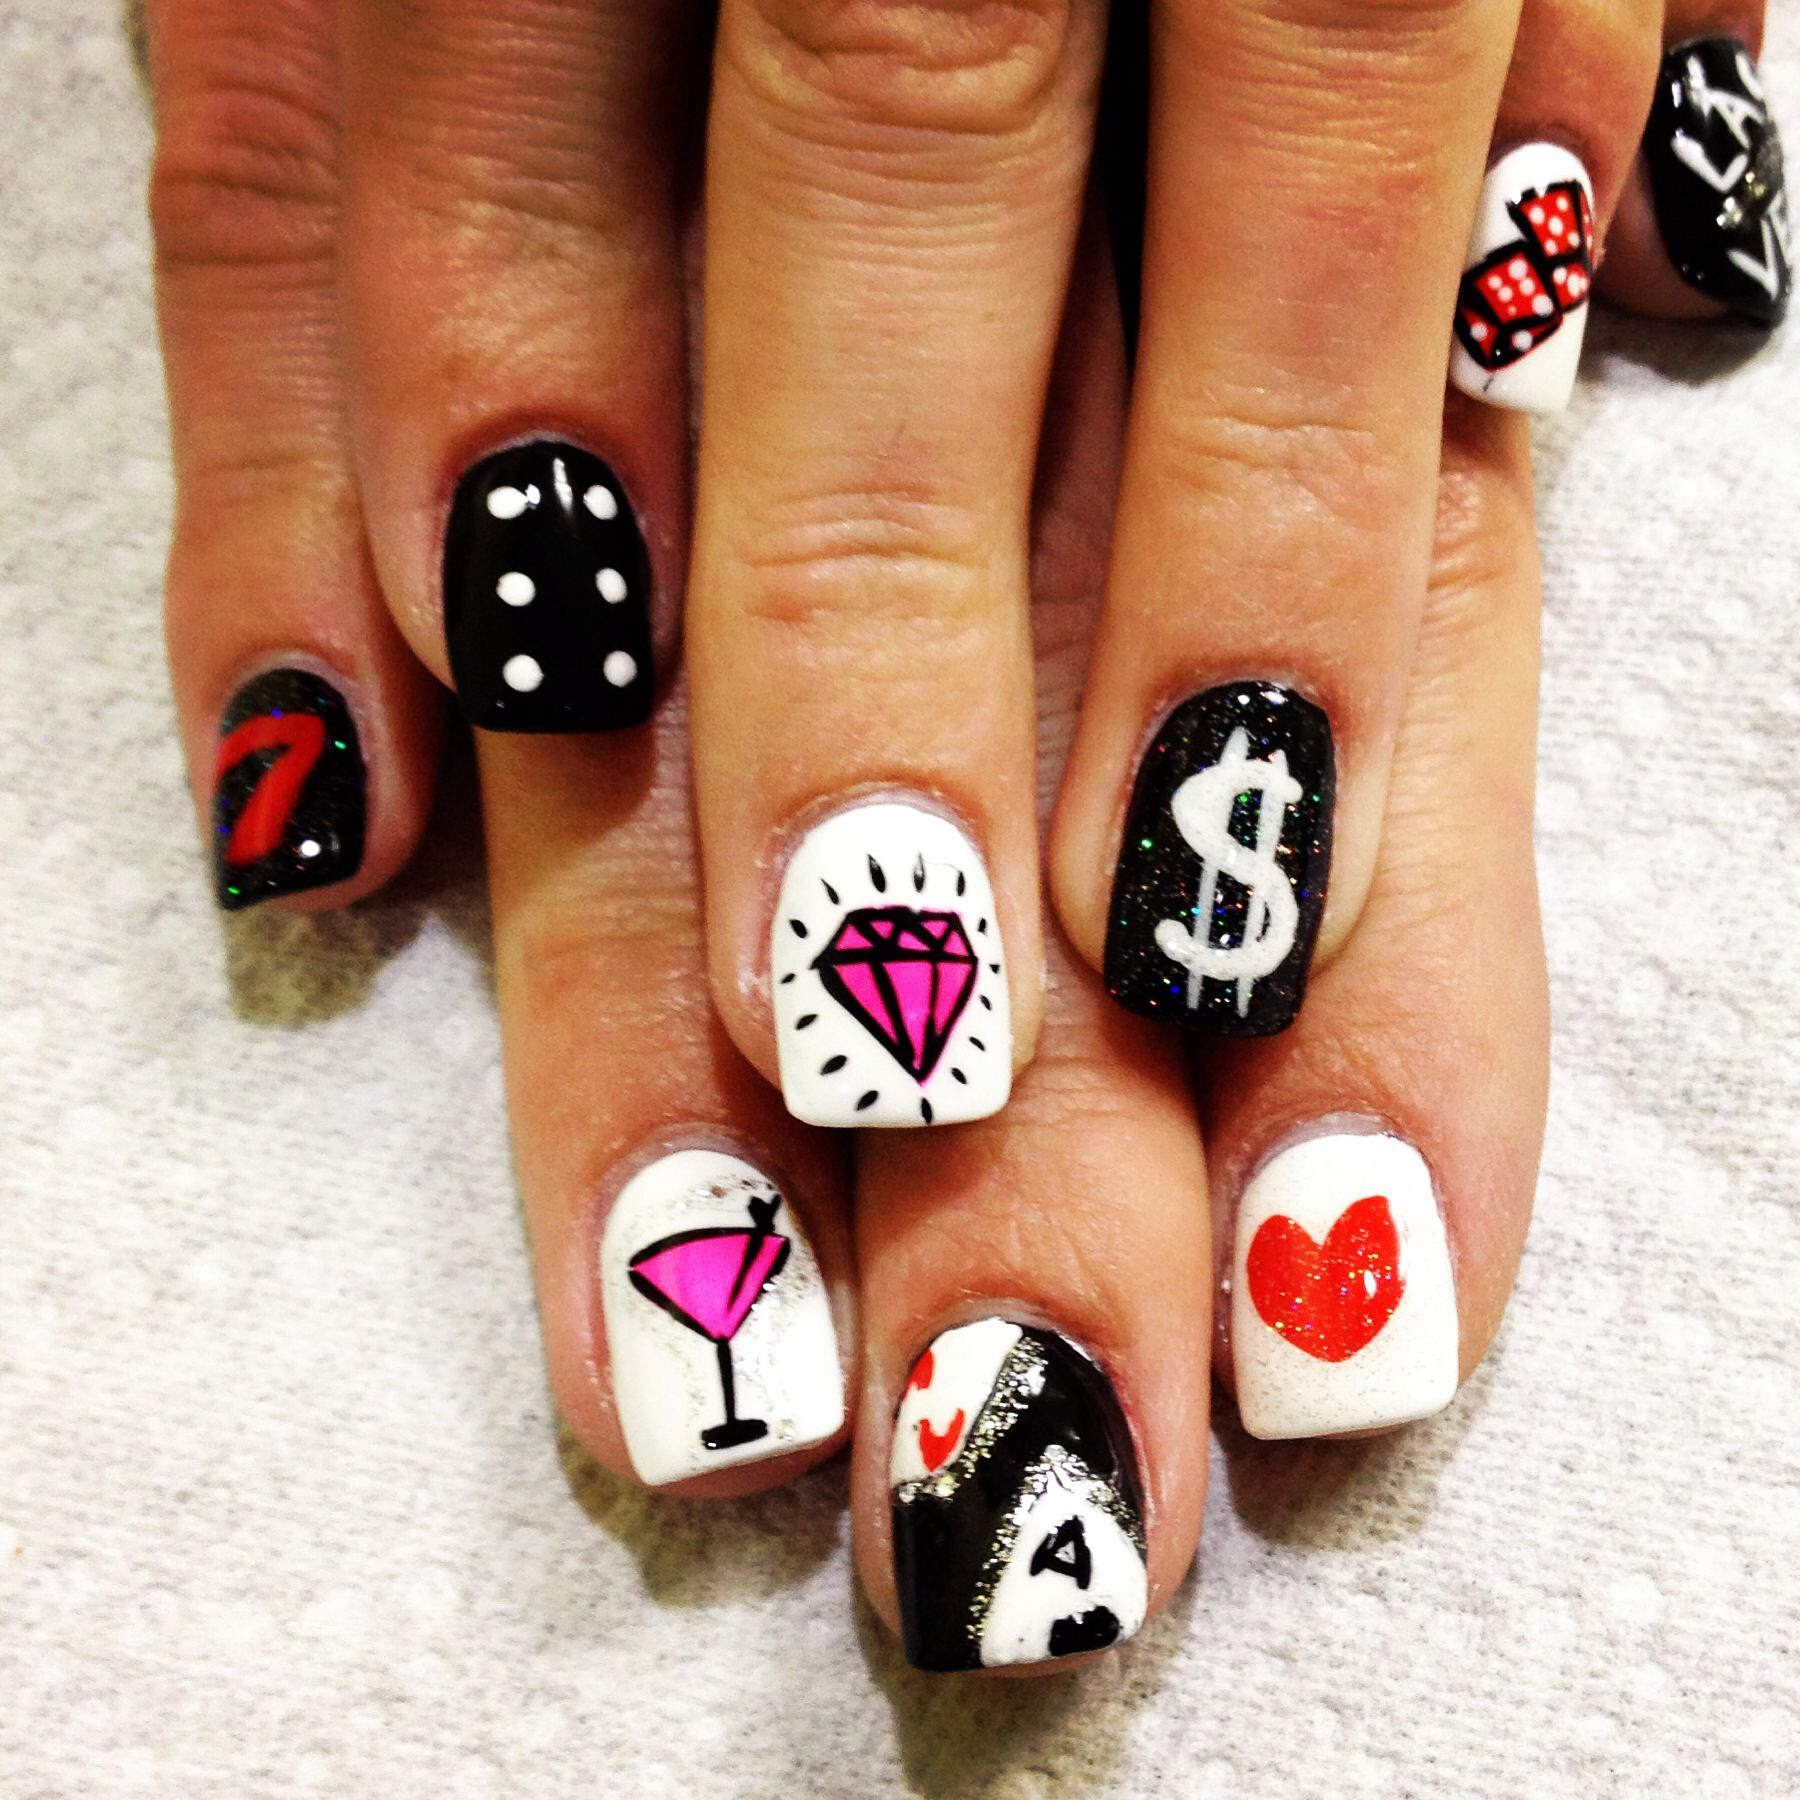 Las Vegas nail art! | My nail art | Pinterest | Las vegas nails ...